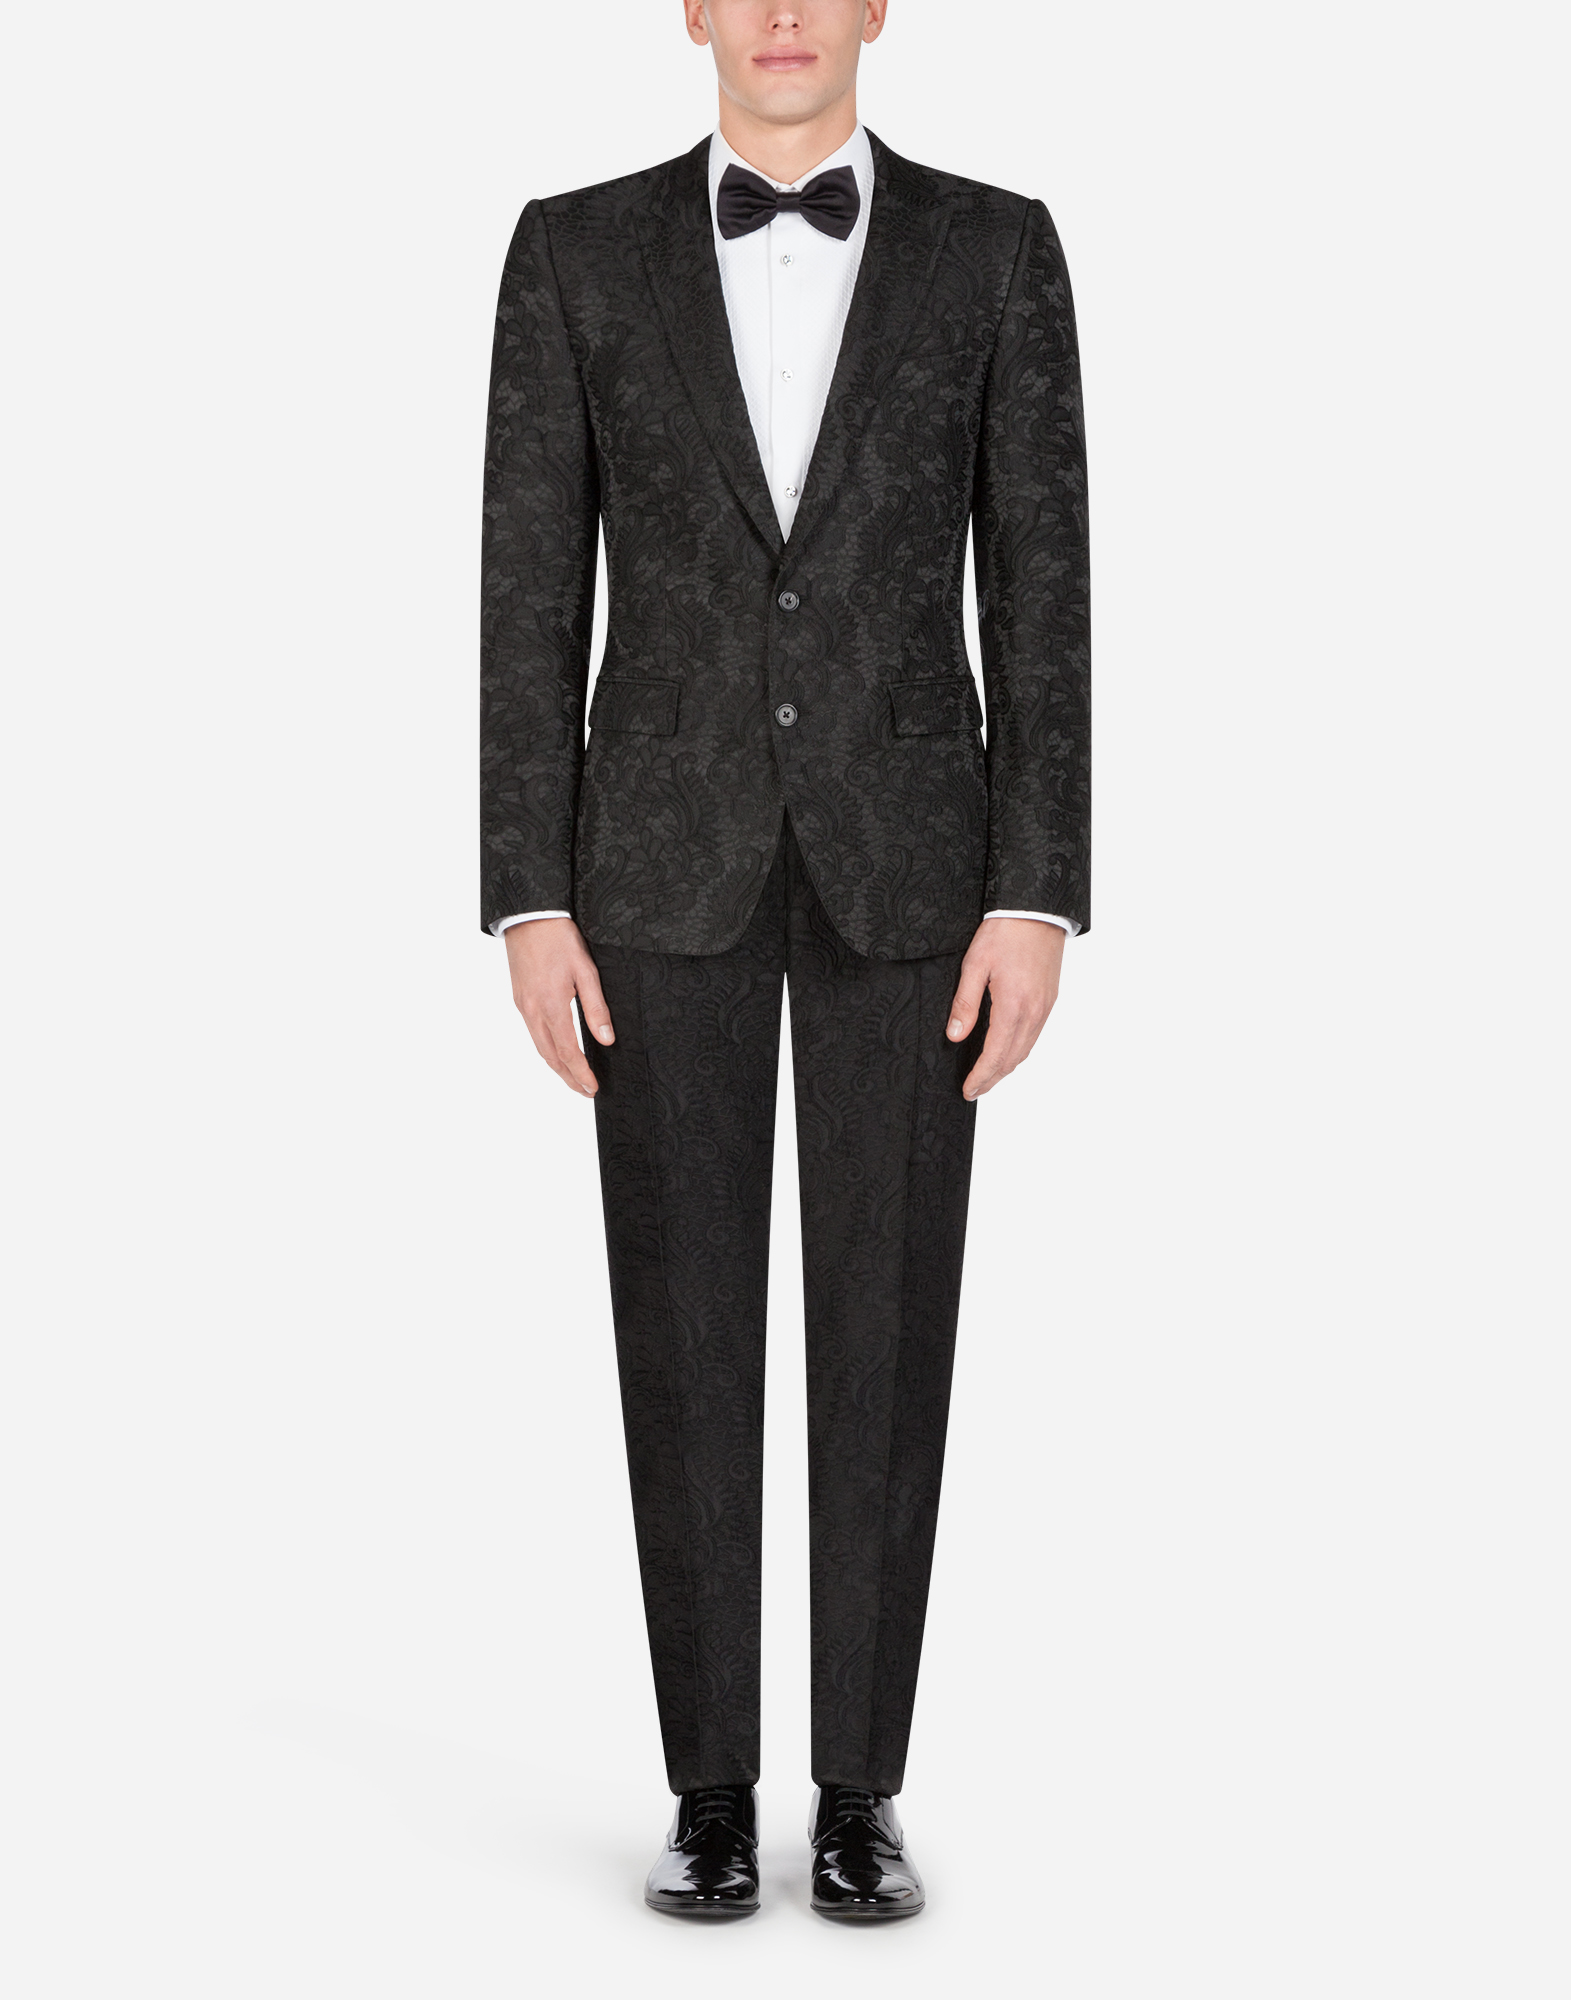 Dolce&Gabbana GOLD-FIT TUXEDO SHIRT IN COTTON WITH EMBROIDERY